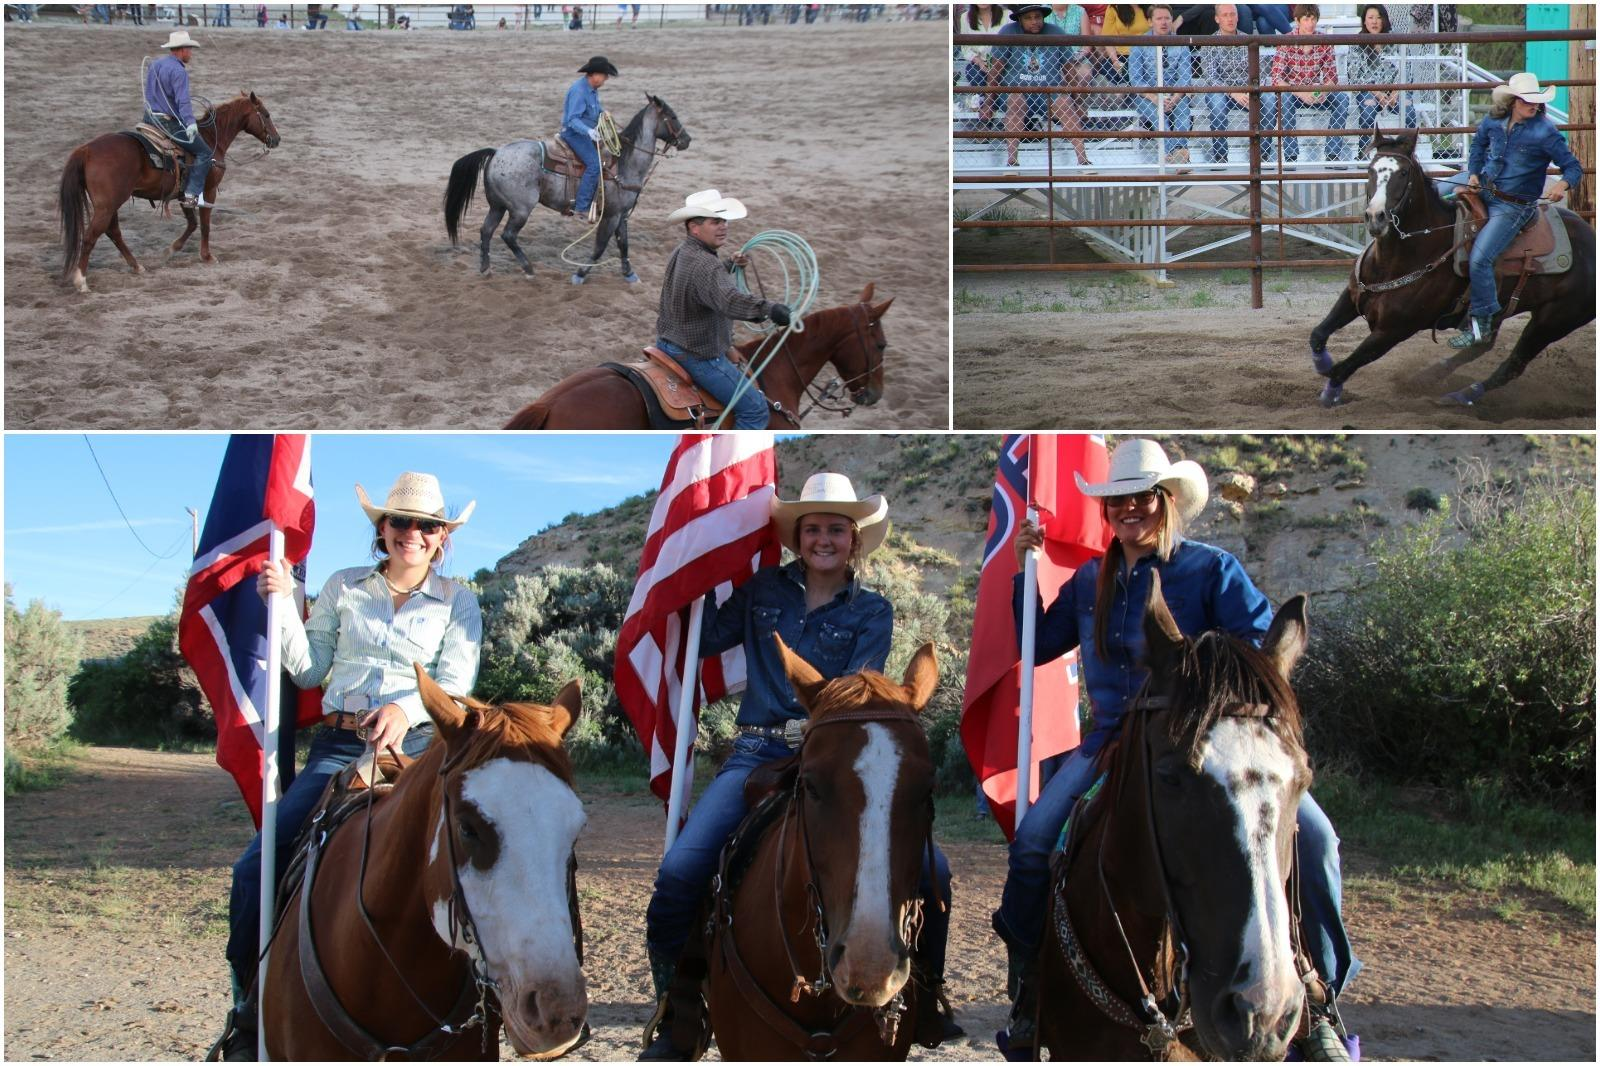 scenes from rodeos in Wind River Country, Wyoming